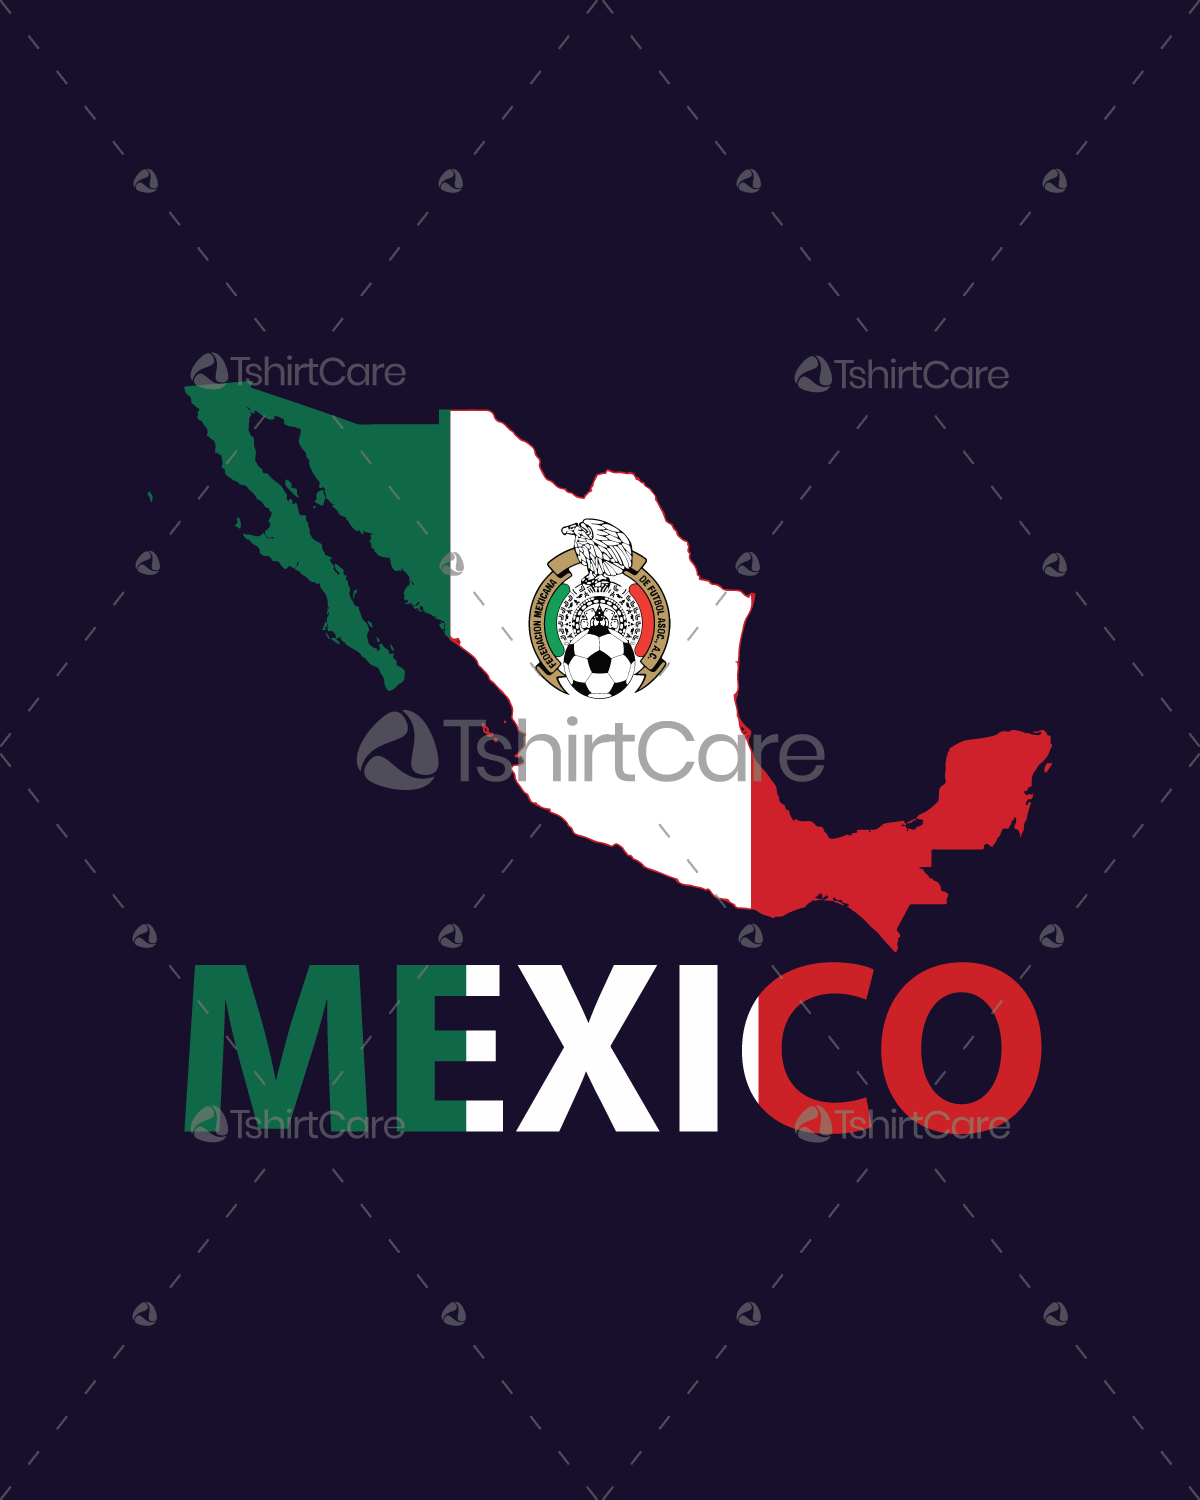 Mexico Map Flag T shirt Design United States Mexican Flag Tee Shirts on united states flag border, united states flaf, american flag, united states flag soccer, united states flag with eagle, united states flag drawing, chiapas state flag, united states america flag, 1830 united states flag, united states flag 1861, united states flag history, londonderry ireland flag, united states national flag, united states flag background, mexican flag, united states flag waving, united states flag texture, united states post flag, united states flag code, united states army flag,